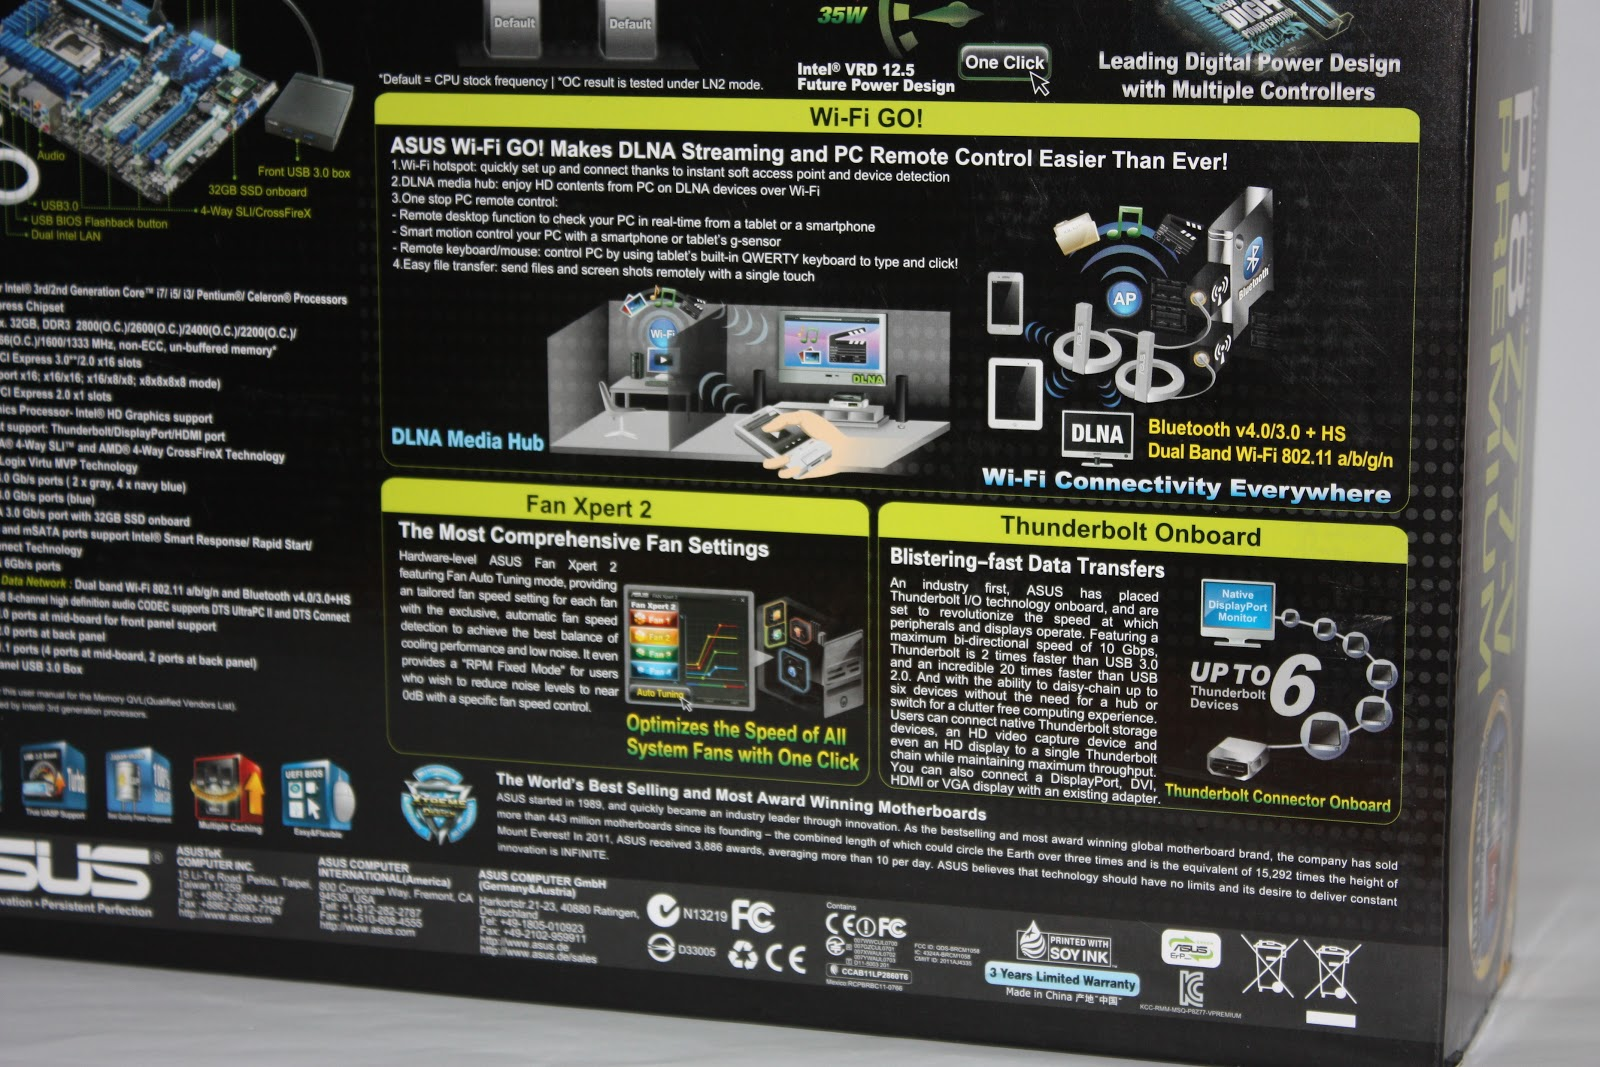 ASUS P8Z77-V Premium Motherboard Review - The Tech Revolutionist